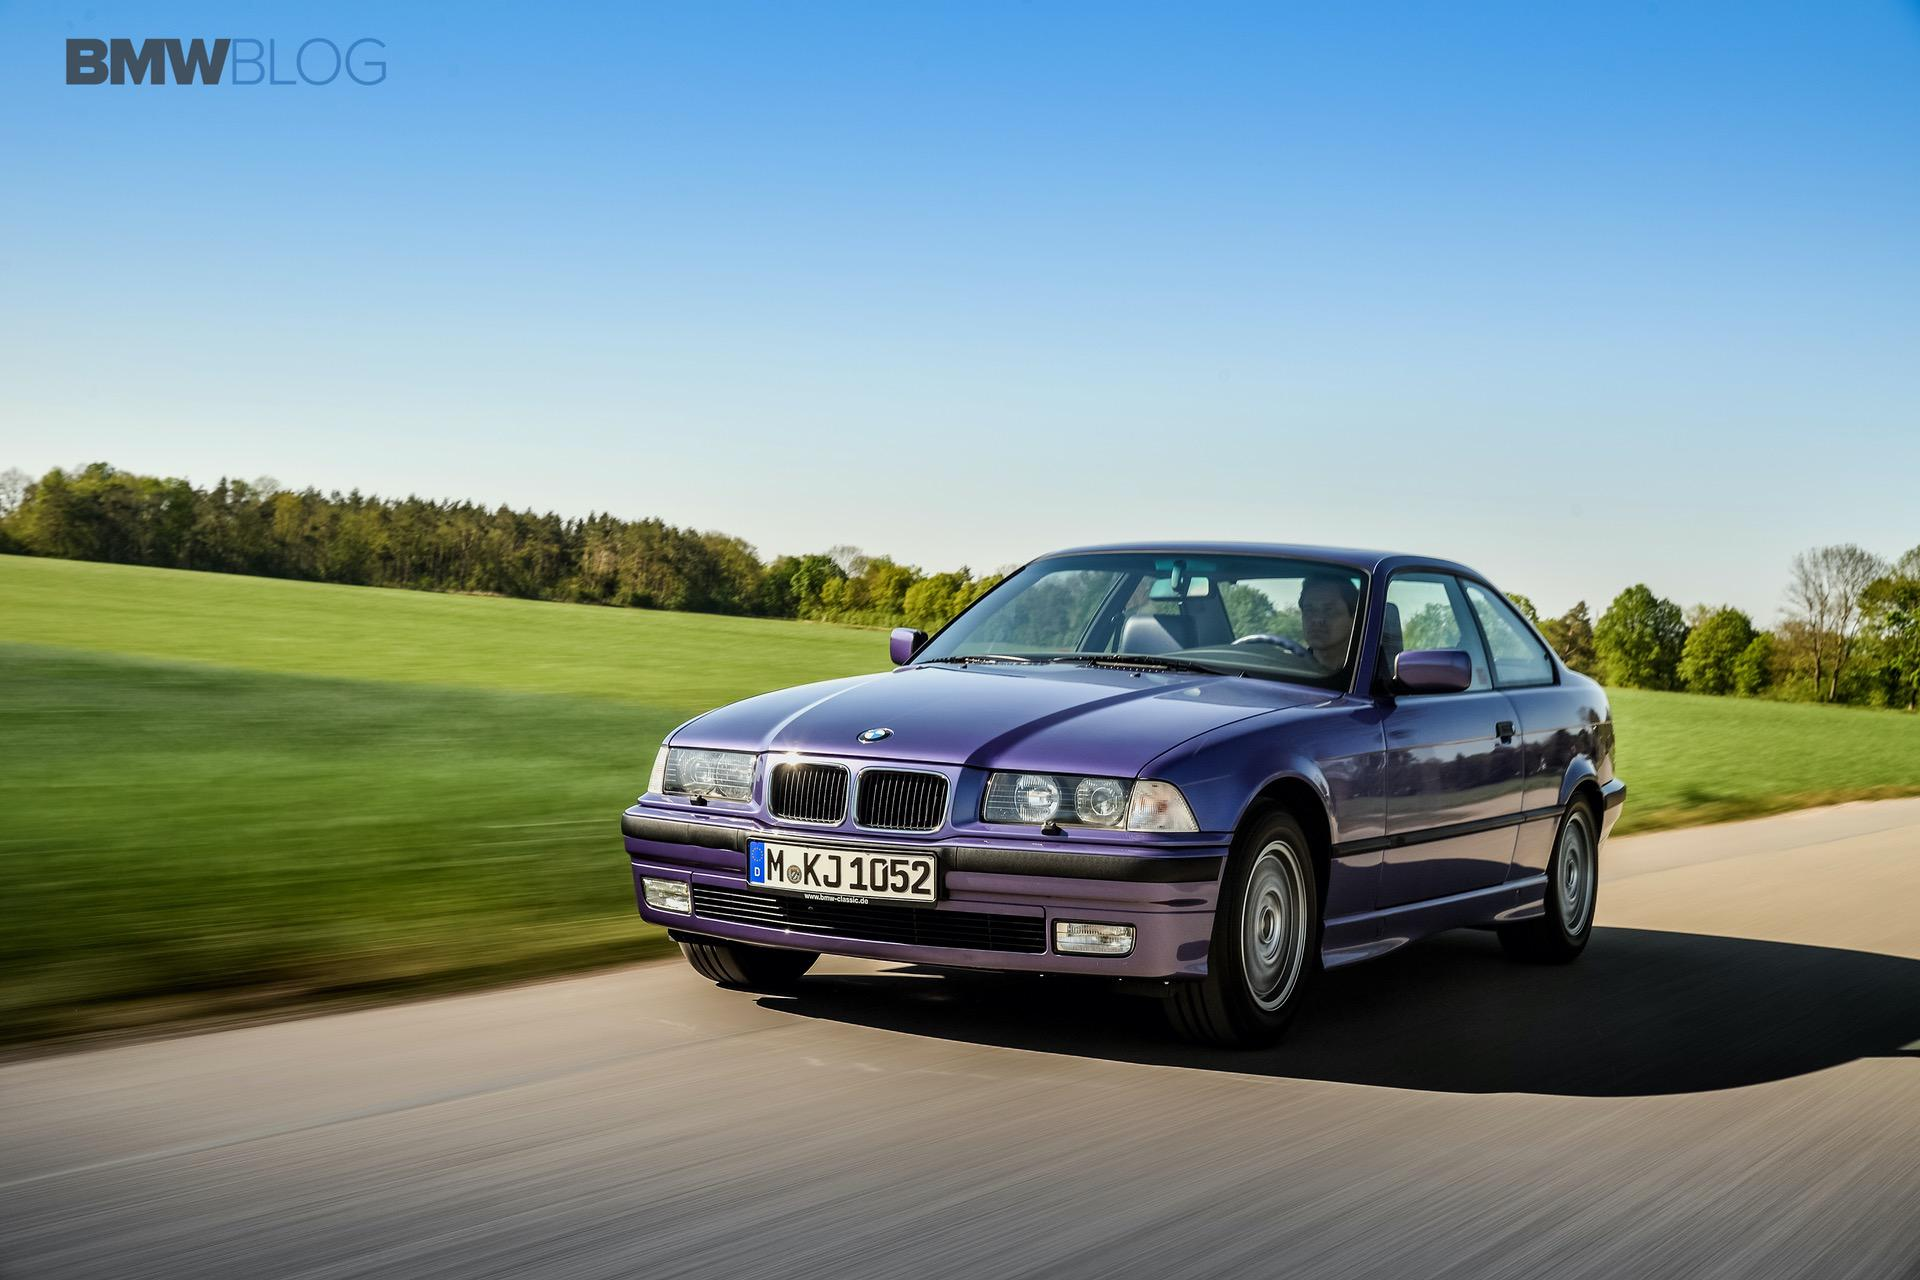 TEST DRIVE: E36 BMW 325i in Individual Violet Metallic